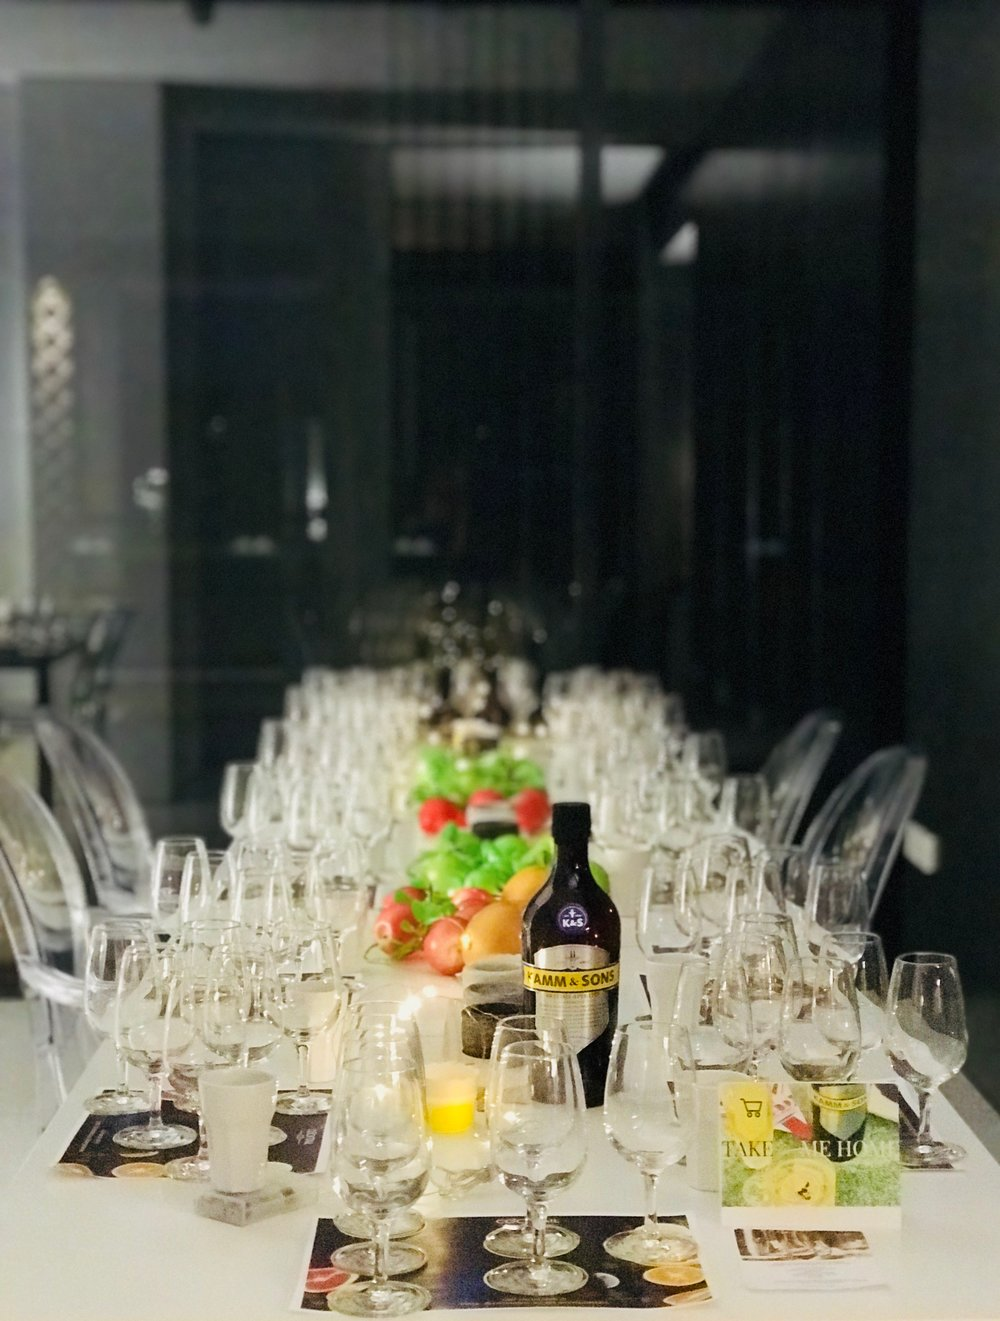 Kamm Aperitif Tasting set up